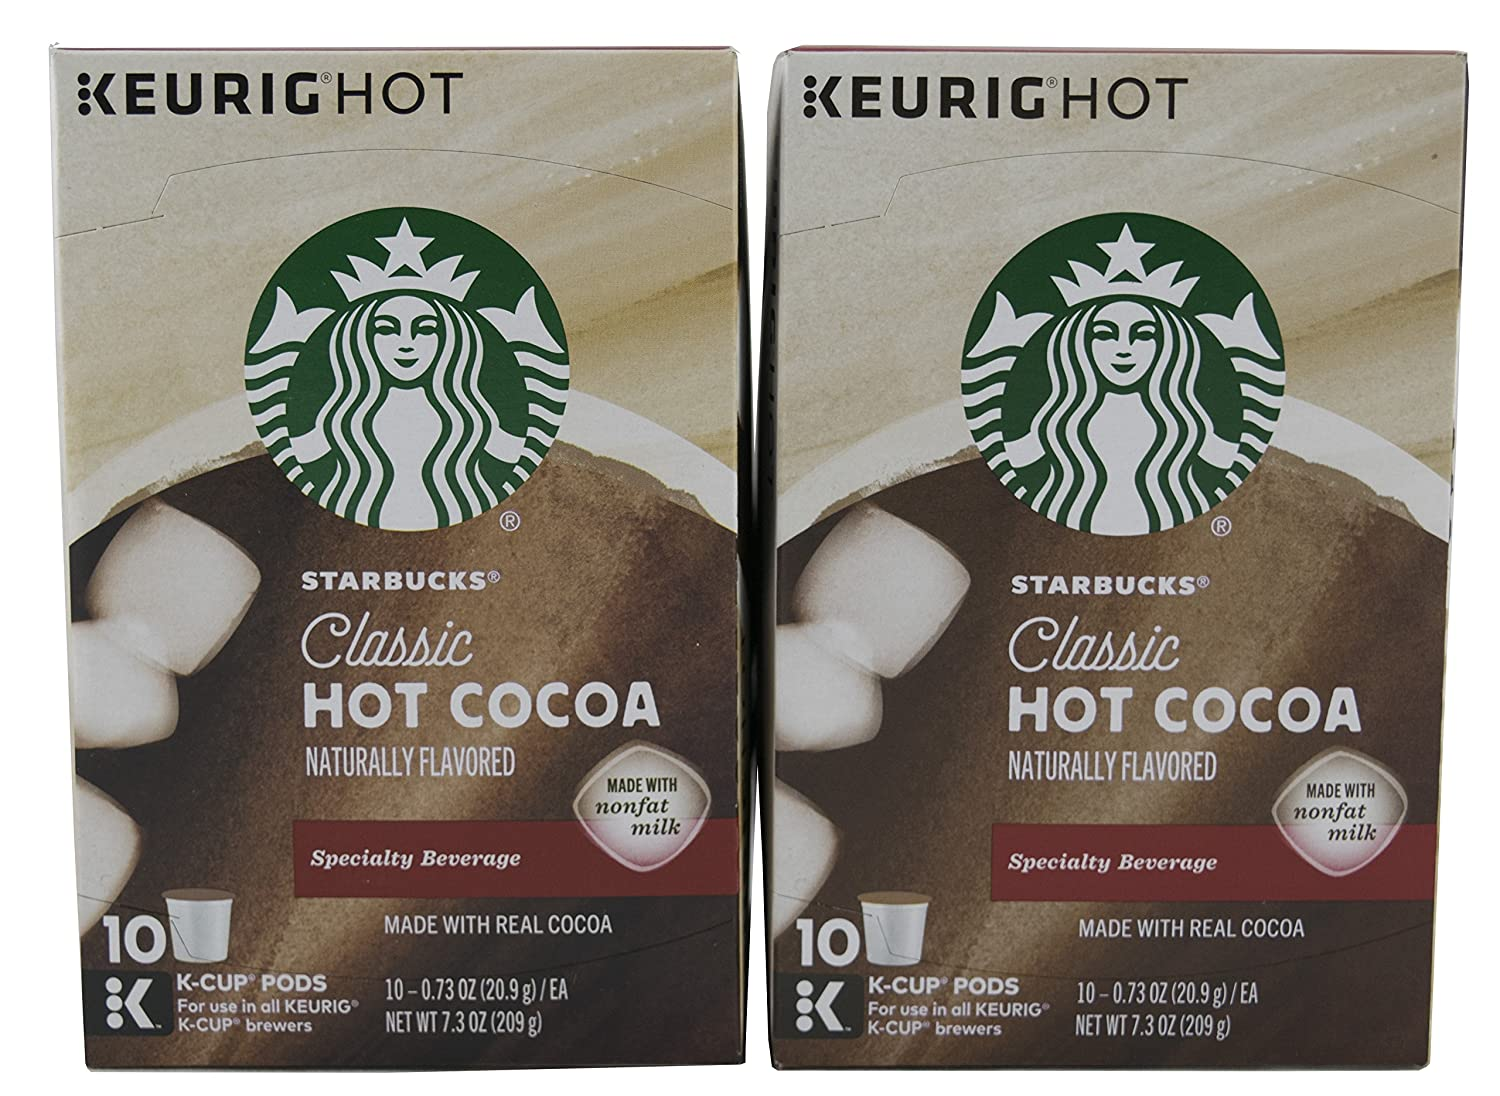 Starbucks Classic Hot Cocoa Naturally Flavored 10 k-cups (Box of 2)